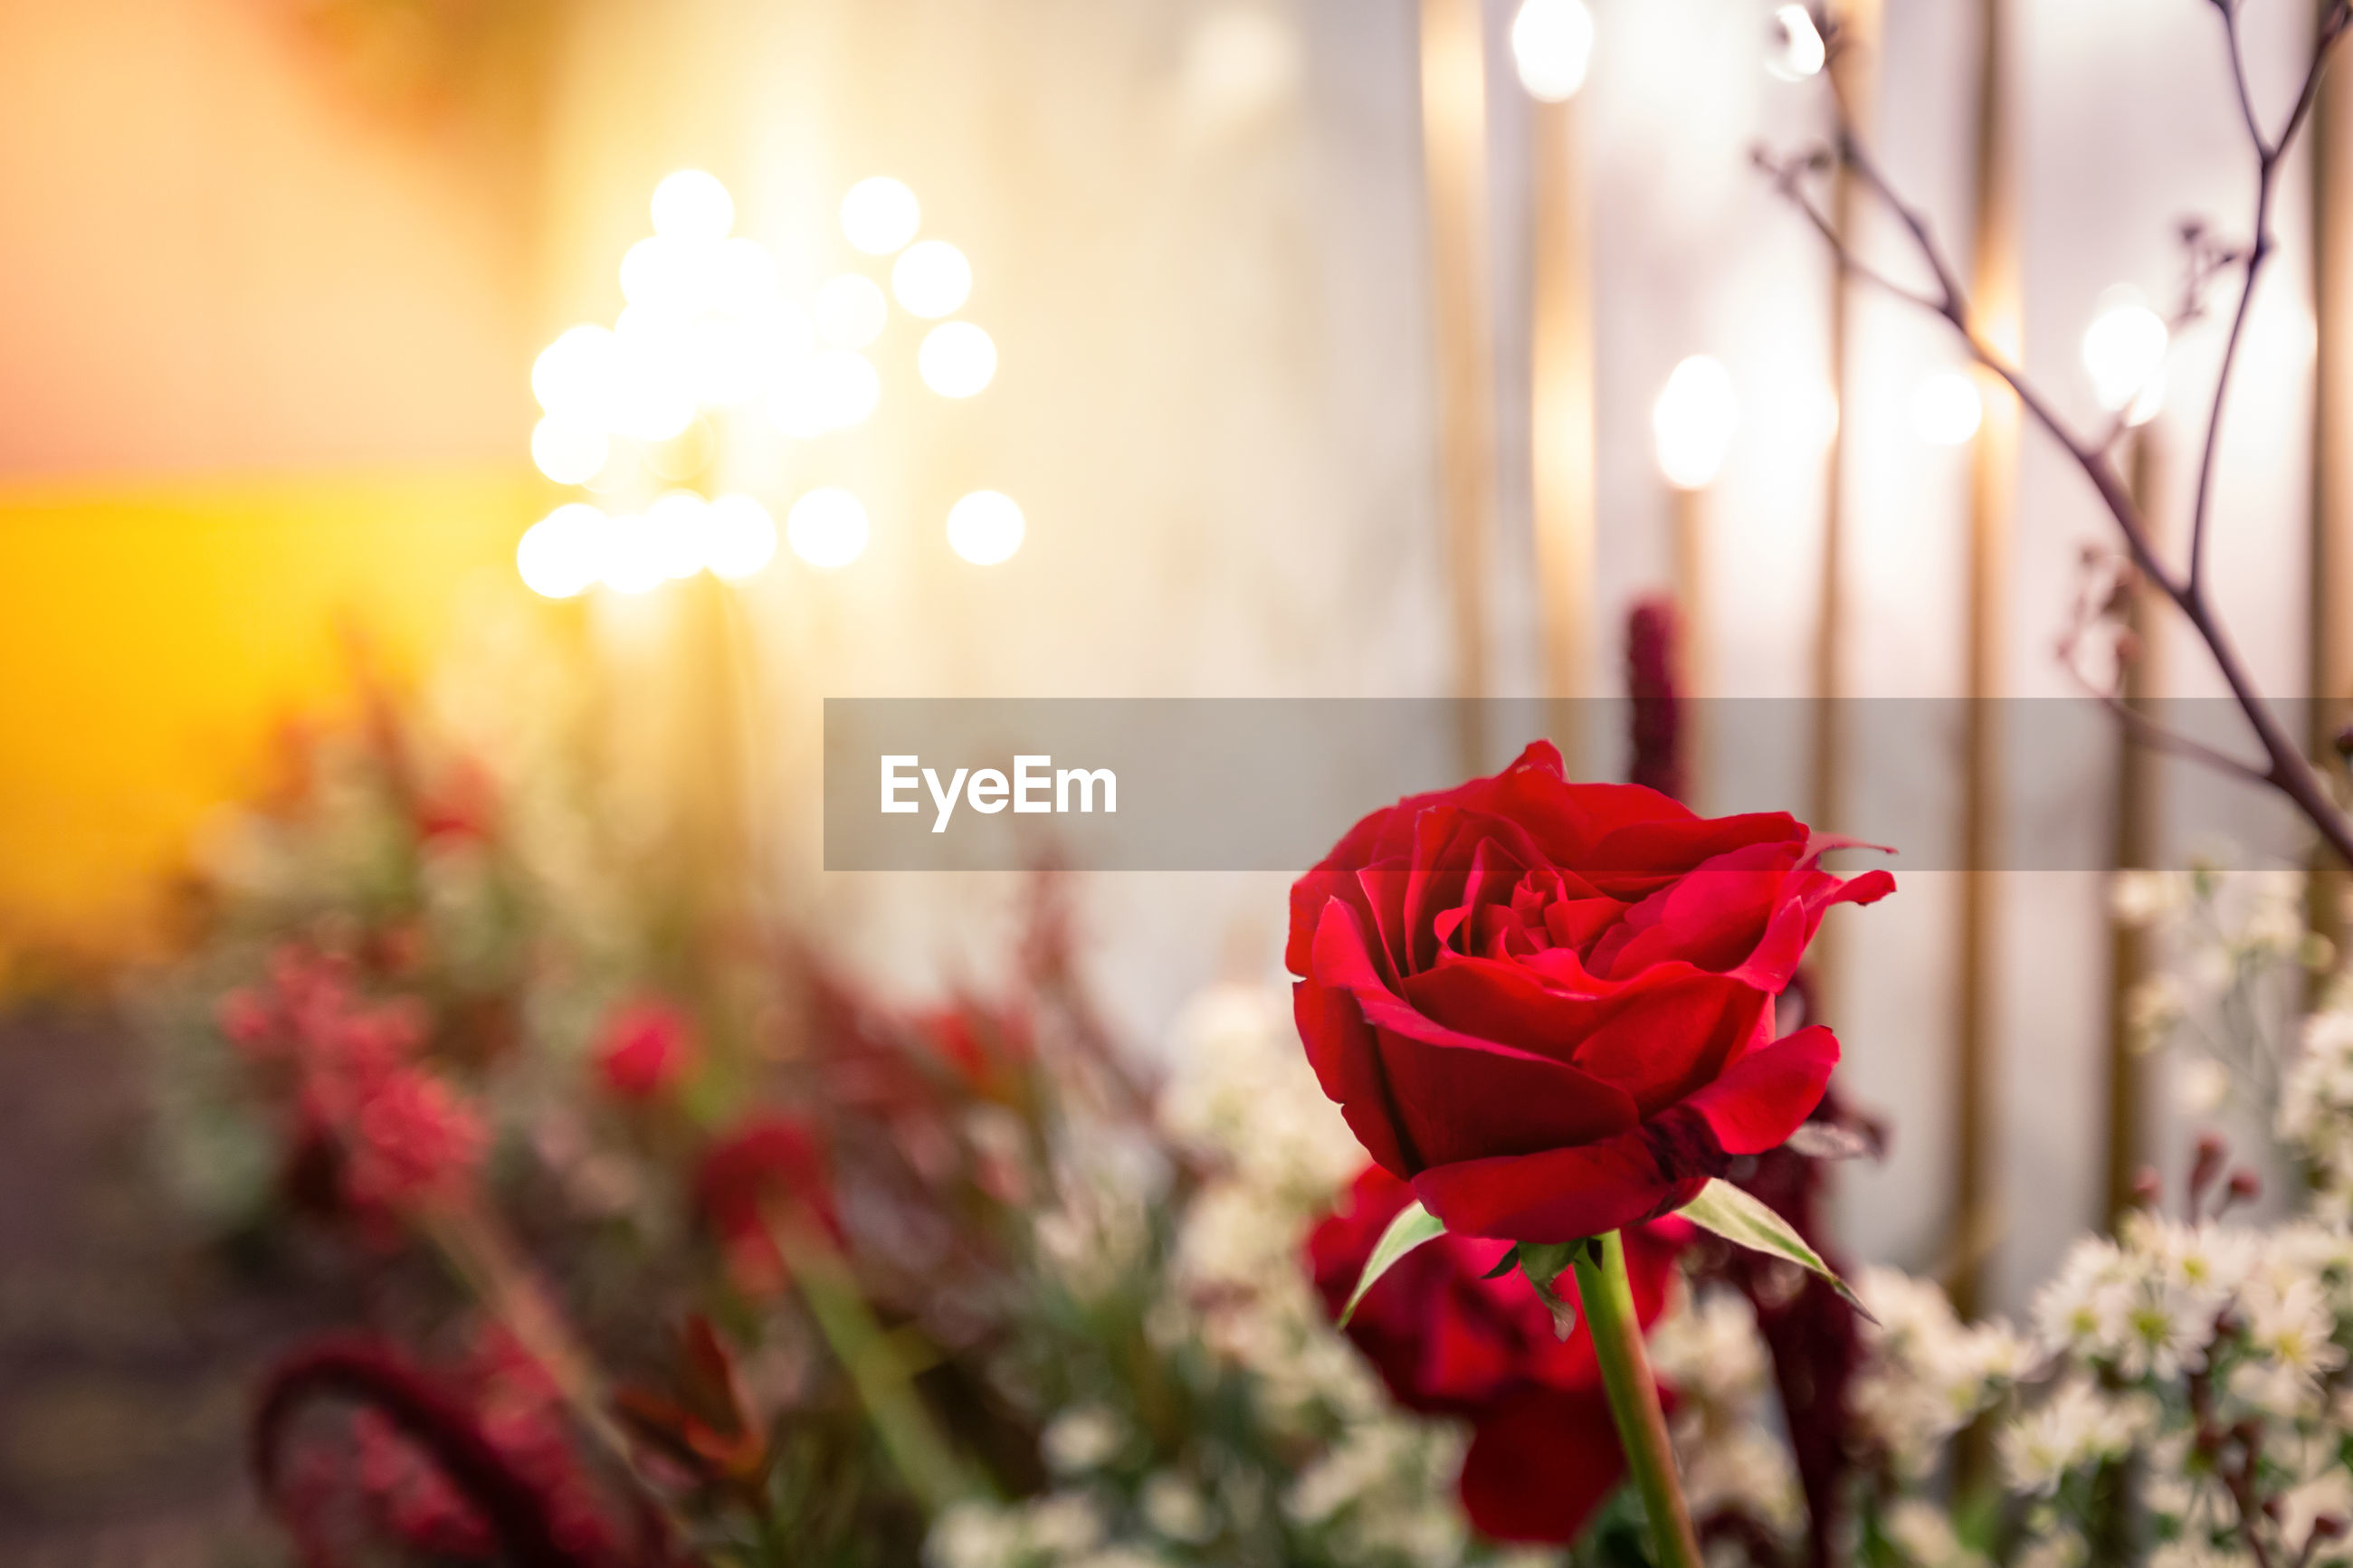 Red rose blooming and background decorated with warm lights.